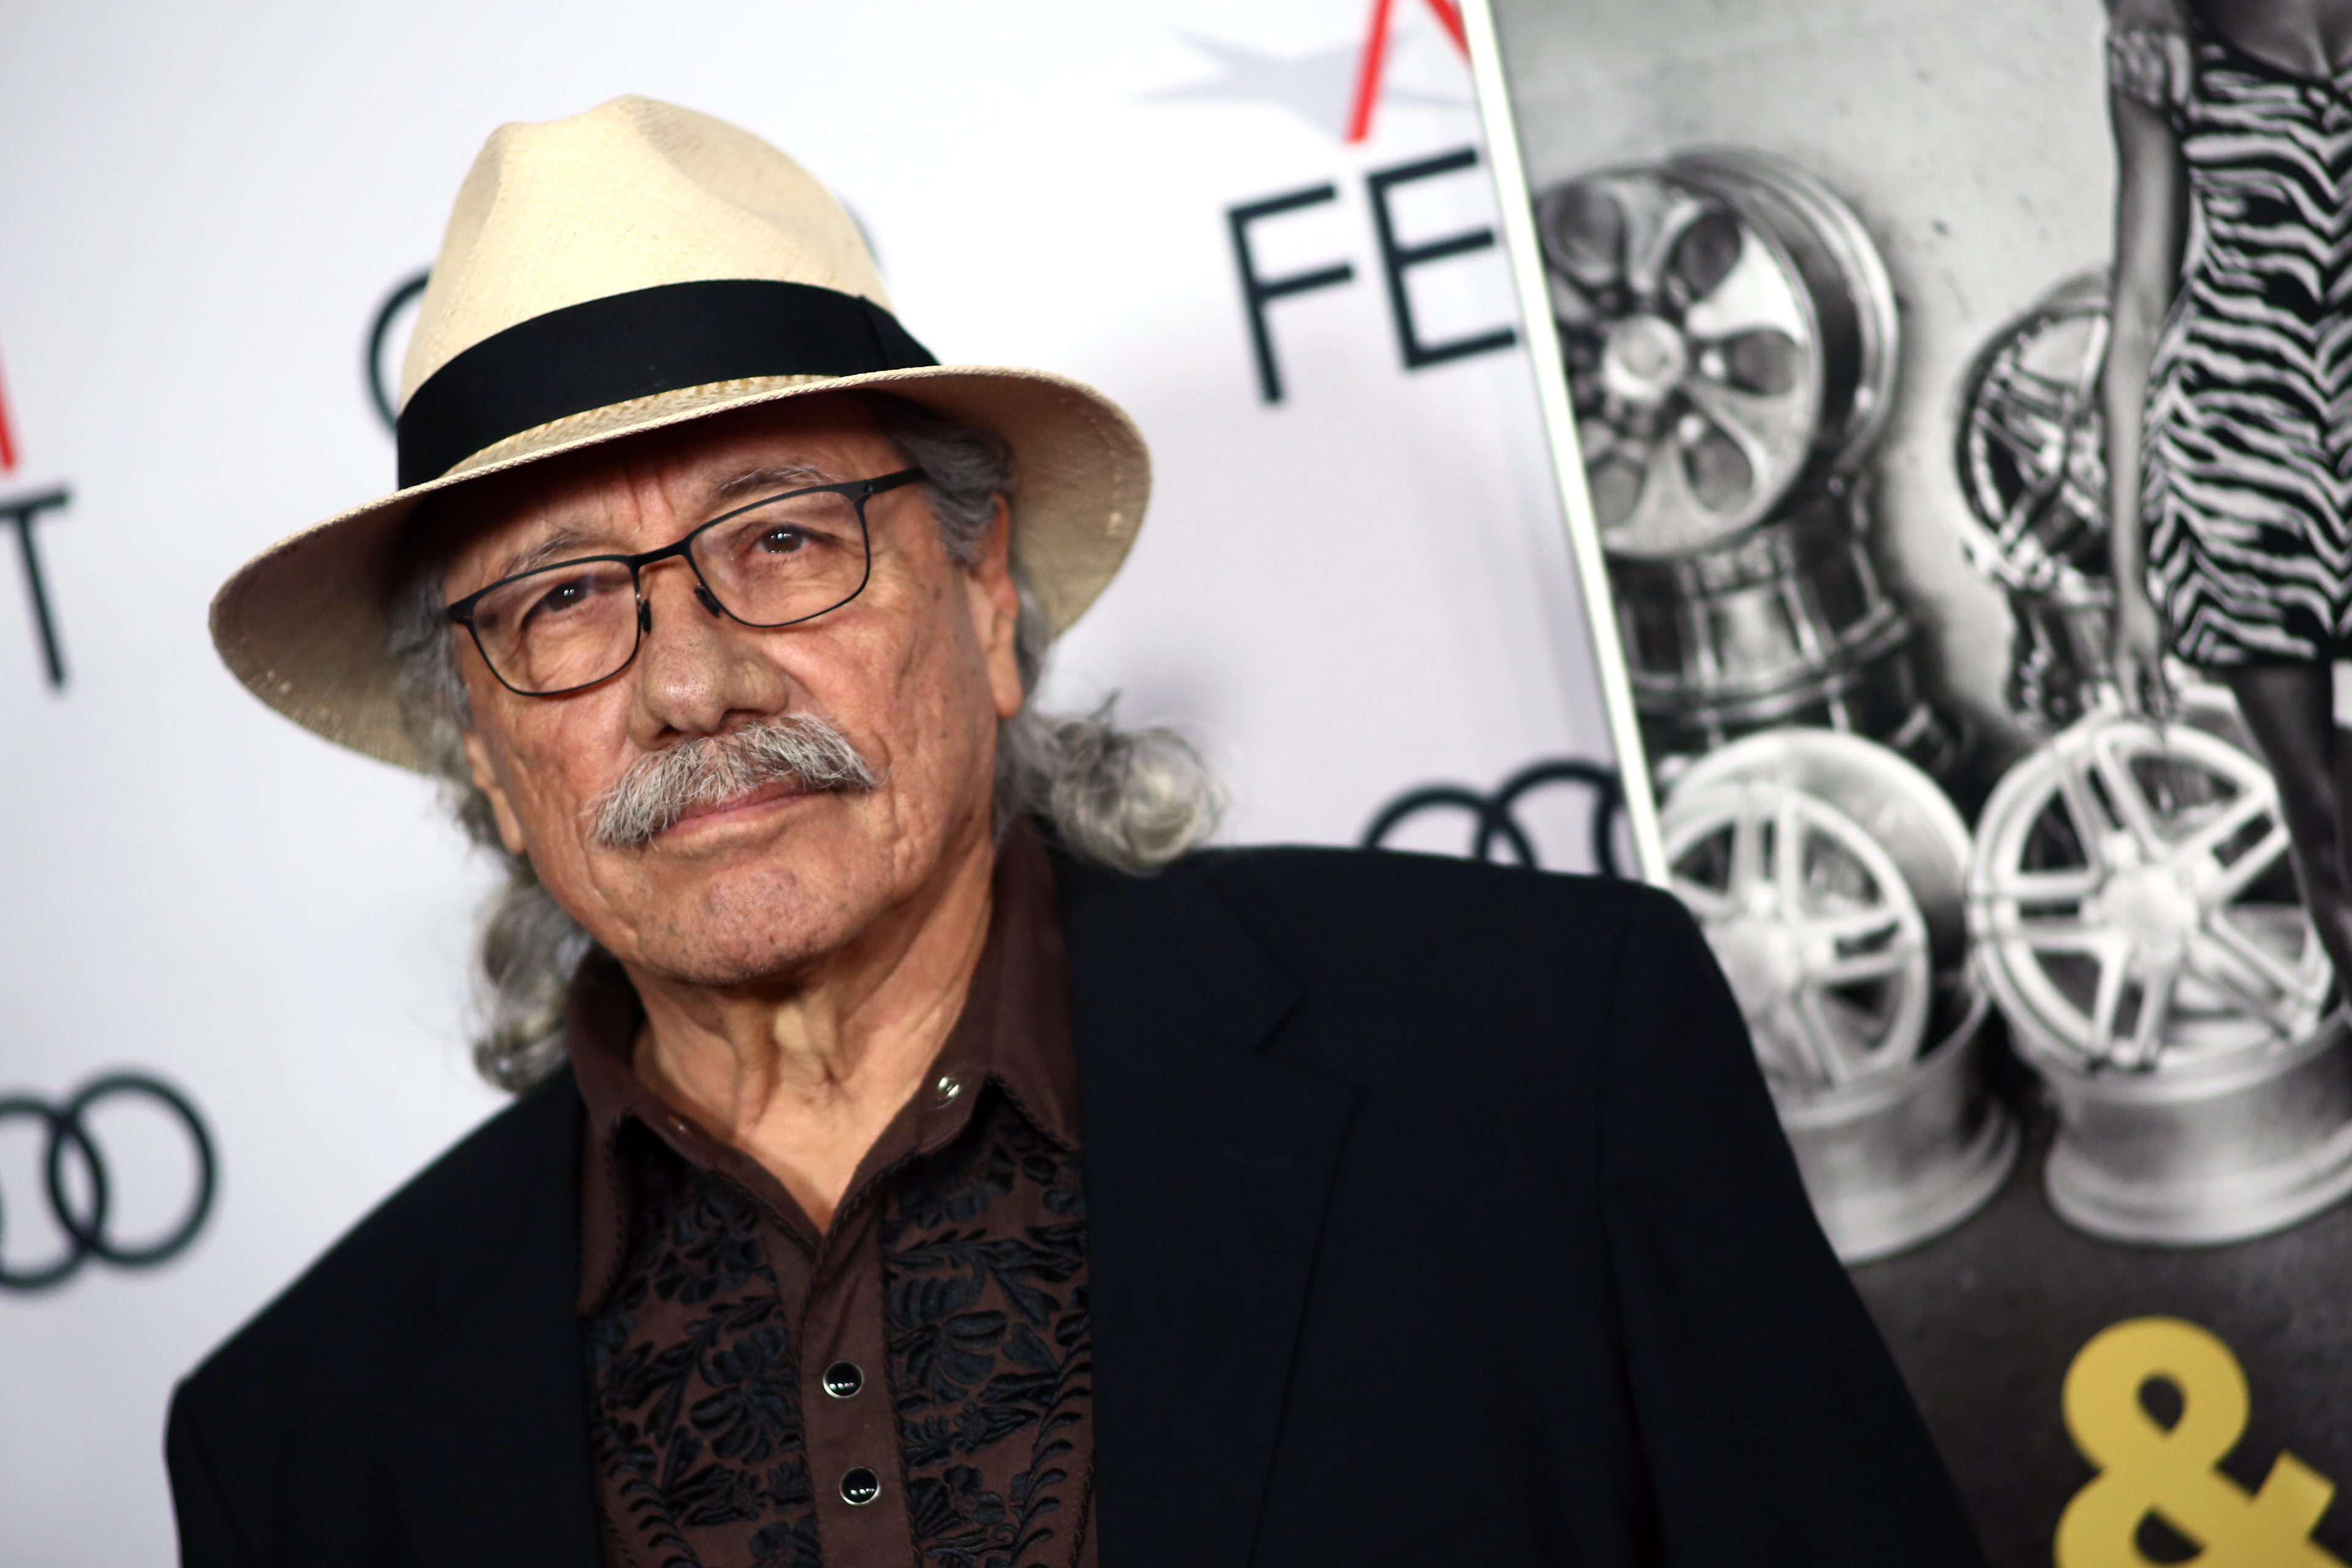 Edward James Olmos explains the surprising support for Trump among Latinx voters: Latinos are very conservative